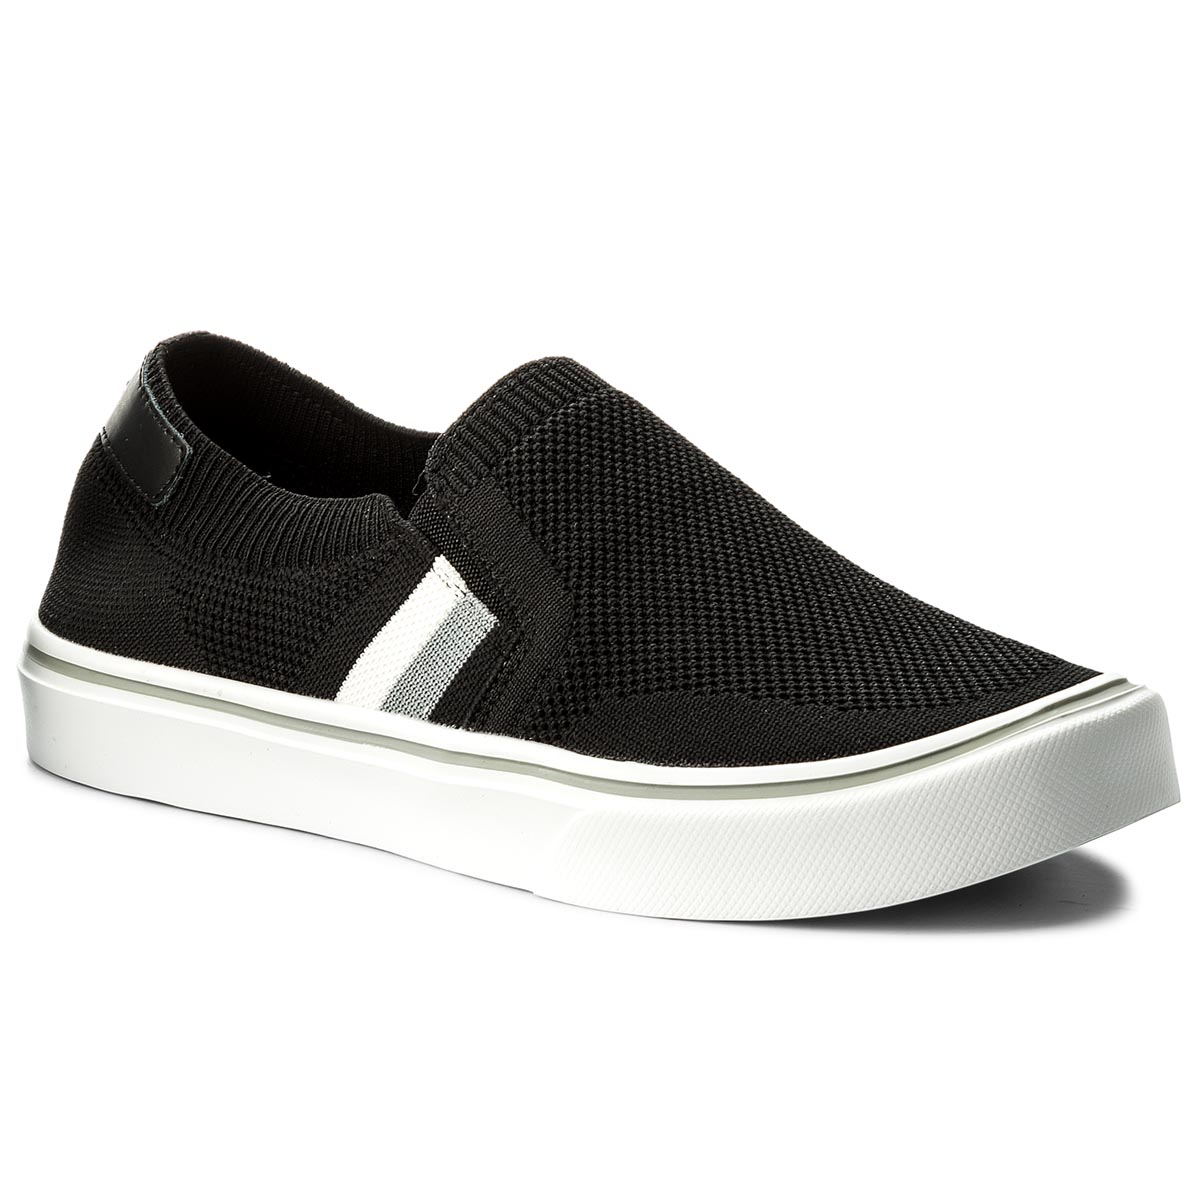 Teniși TOMMY HILFIGER - Lightweight Corporate Slip On FM0FM01634 Black 990